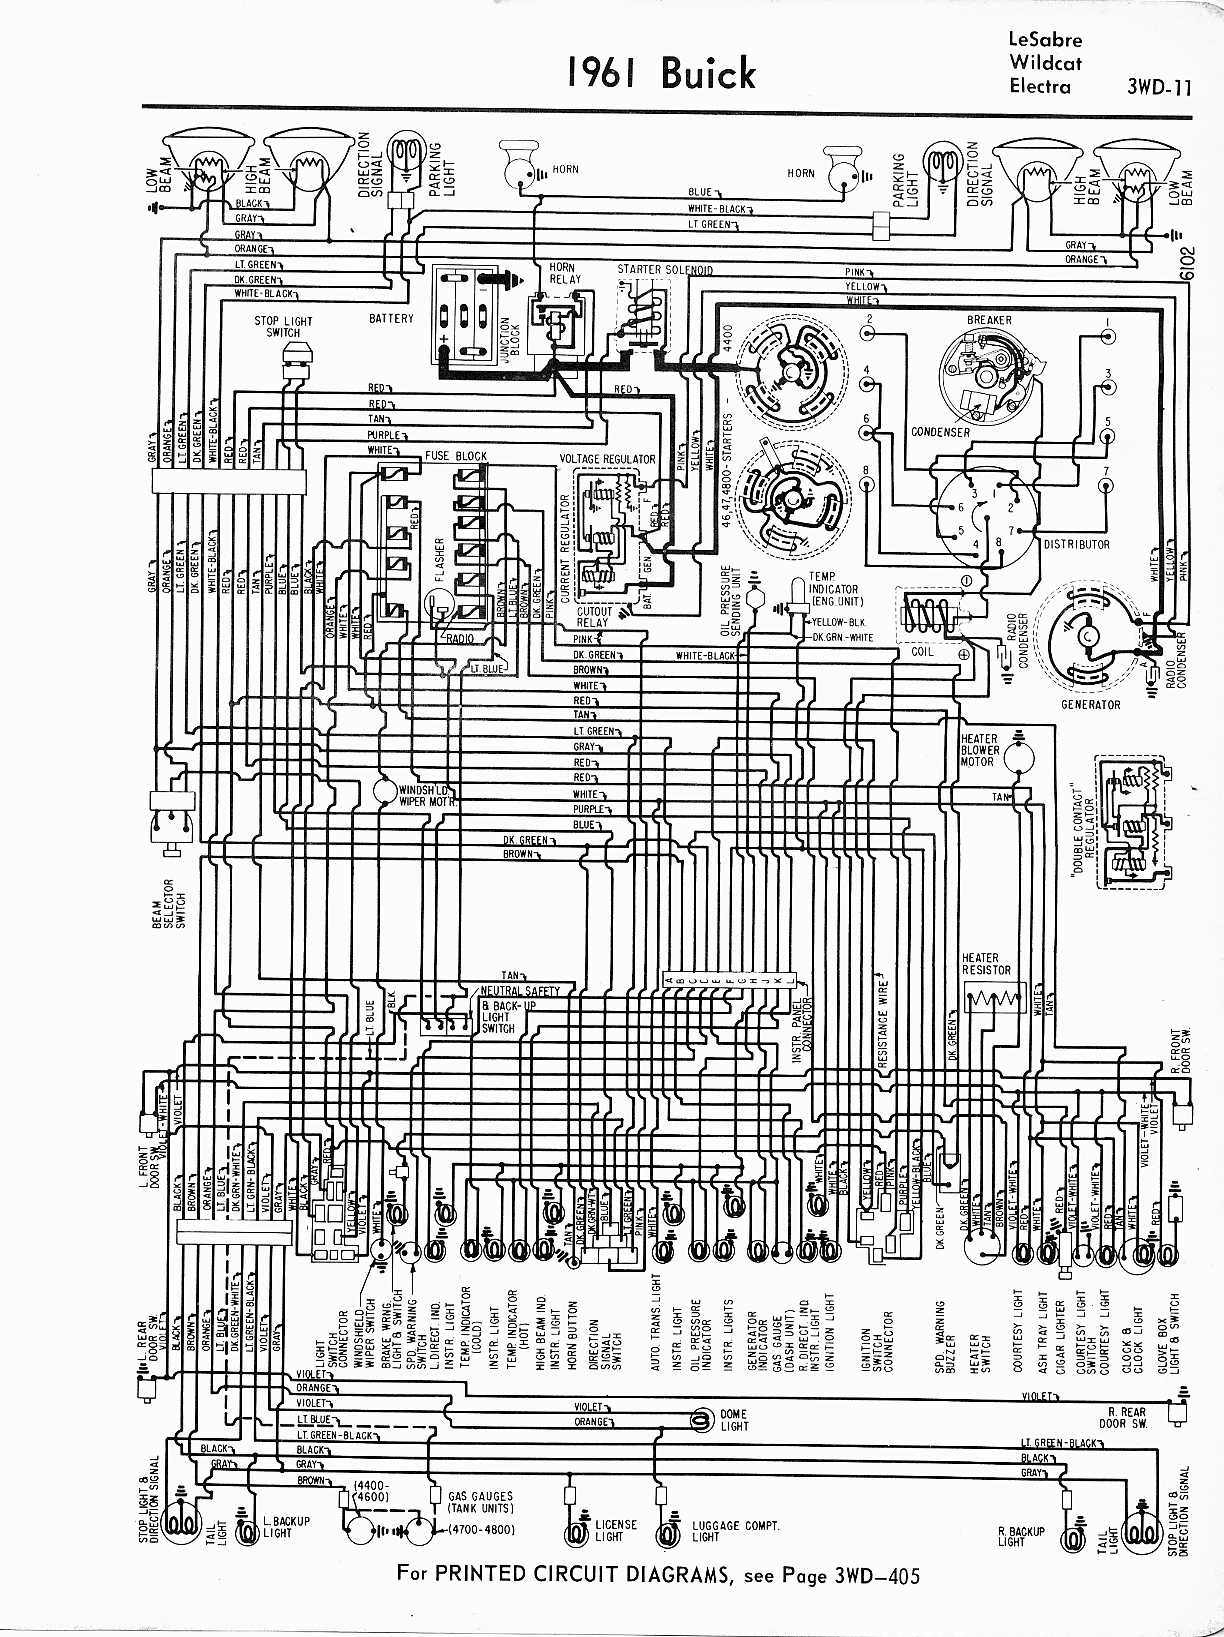 hight resolution of wiring diagram for buick lesabre wiring diagram inside 2000 buick lesabre fuel pump wiring diagram 2000 buick lesabre wiring diagram